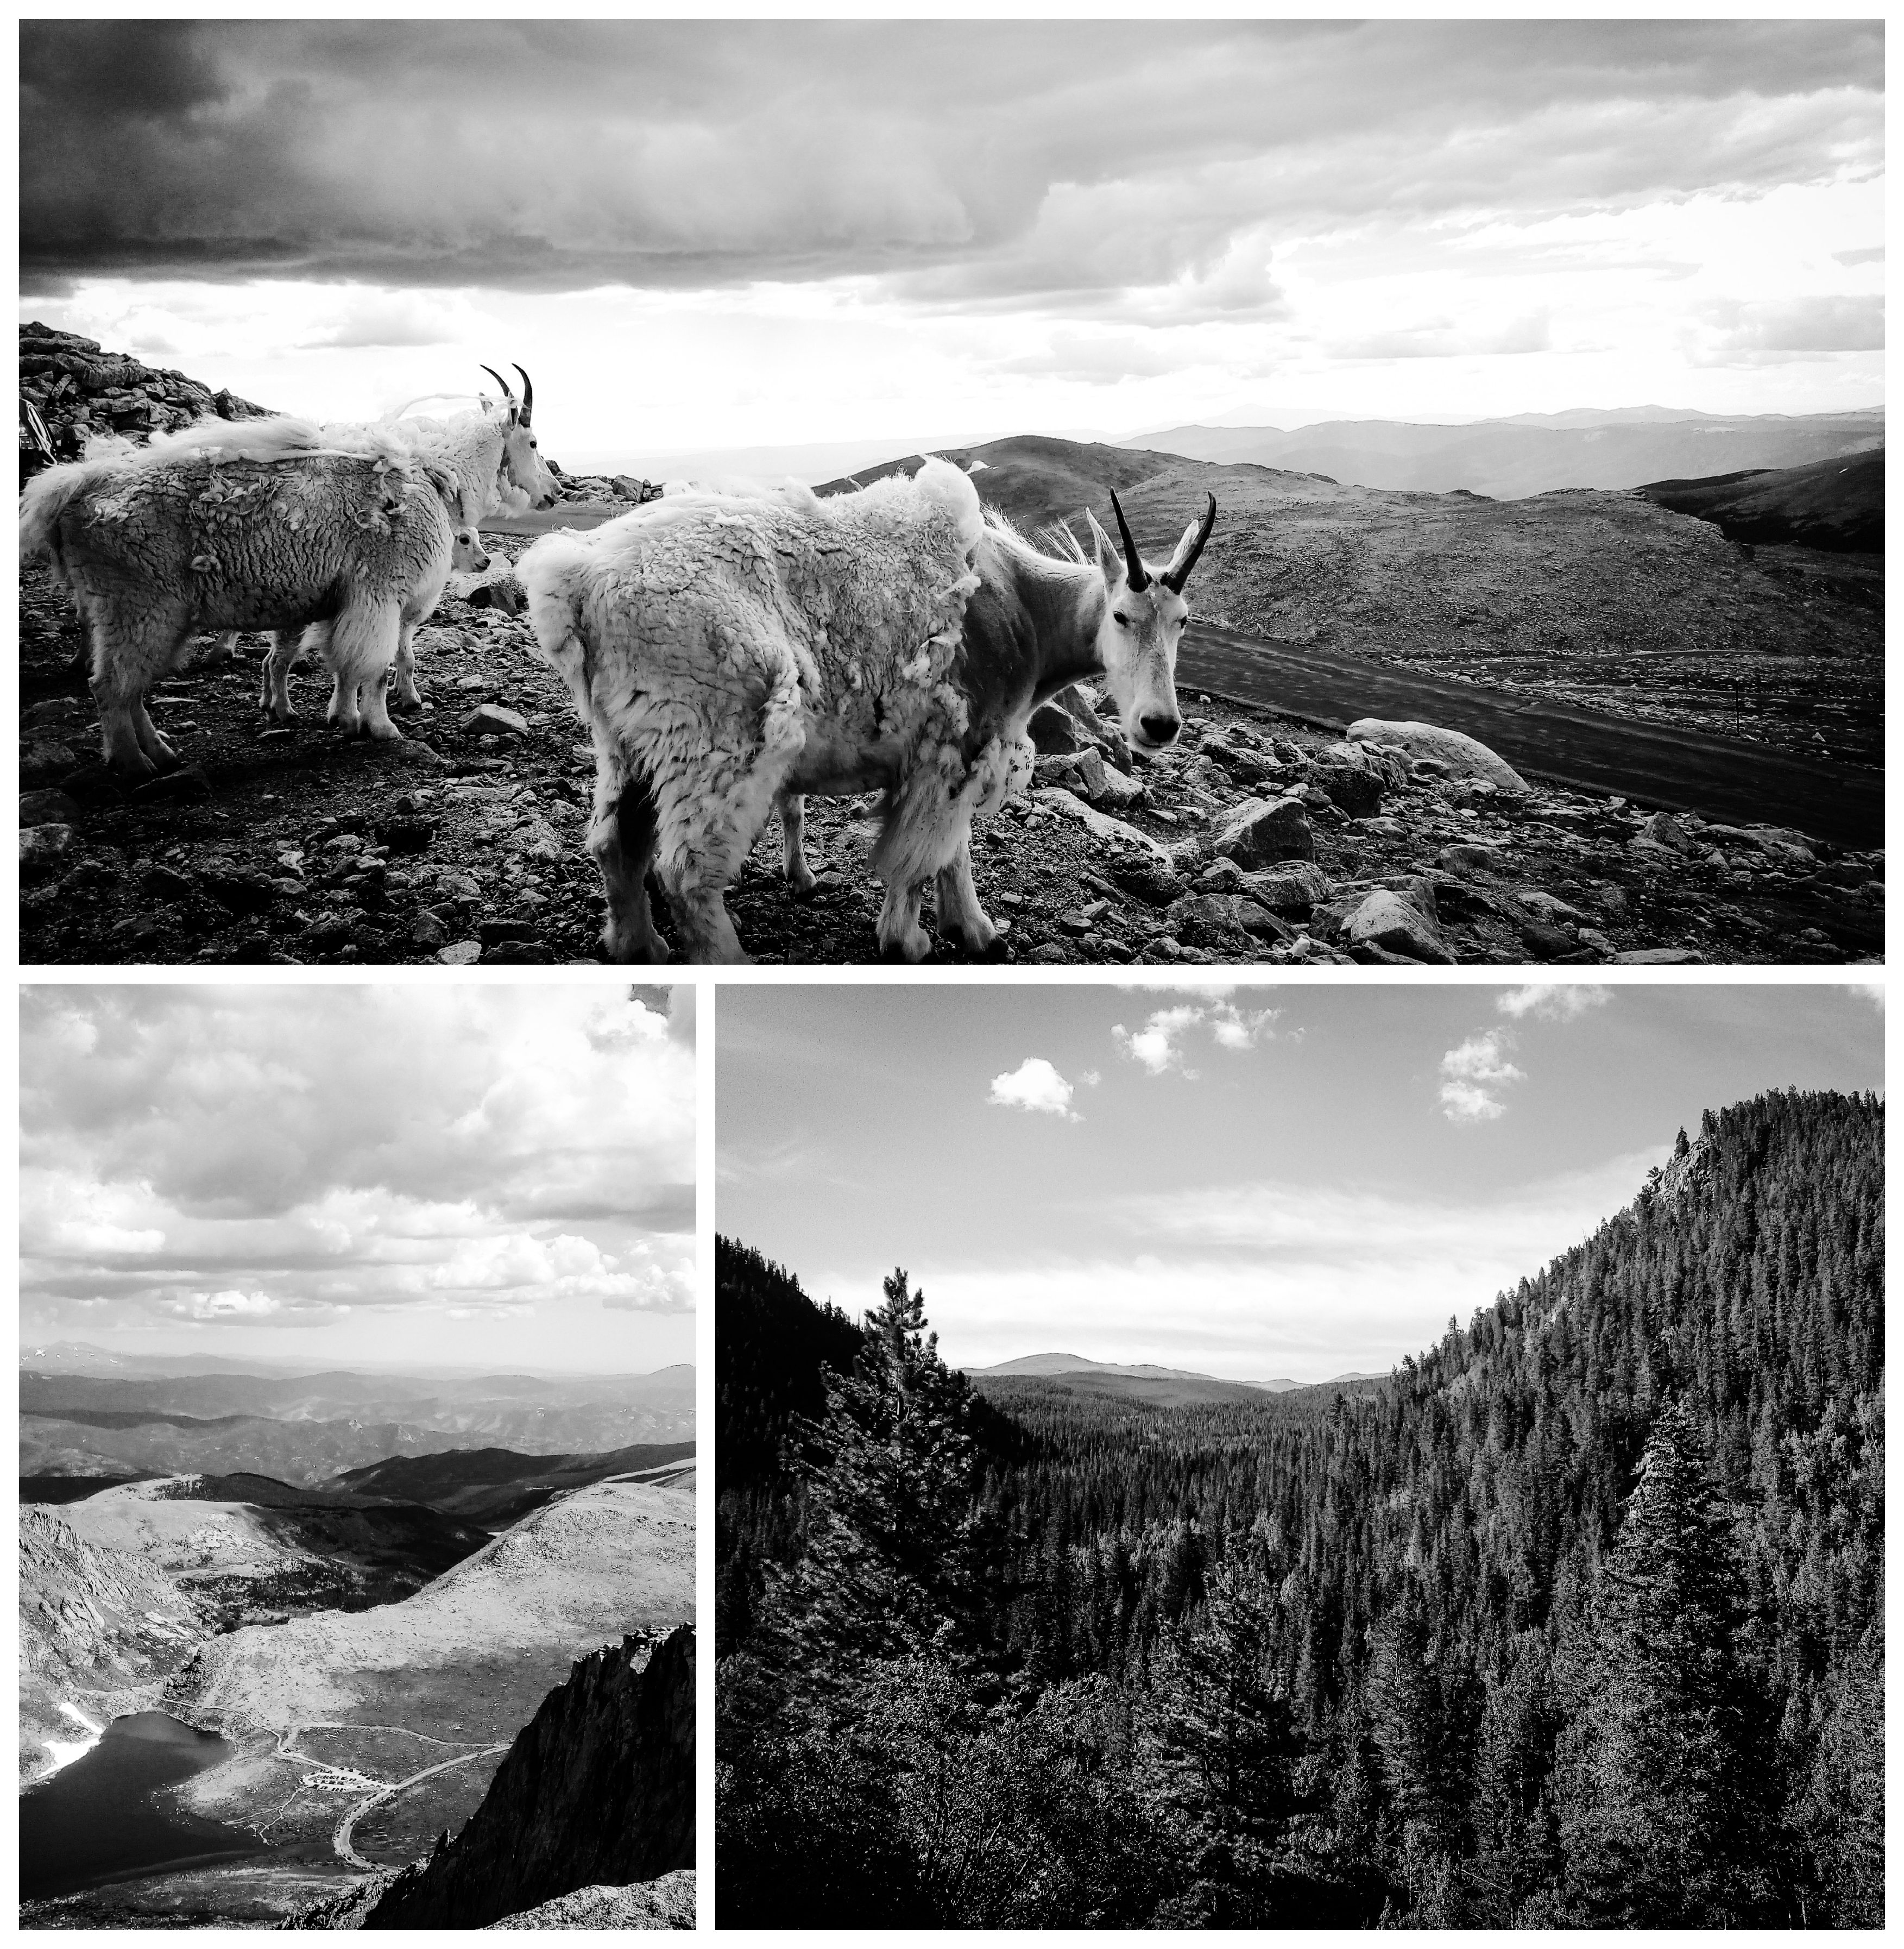 Nature Photos B&W - Clear Creek County, Colorado, US. 'Mount Evans.' The summit can be reach entirely by a road, that slowly snakes up the mountain. sketchbookexplorer.com @davidasutton @sketchbookexplorer Facebook.com/davidanthonysutton #mountevans #clearcreekcounty #colorado #unitedstates #USA #travel #travelblog #photography #nature #wildwest